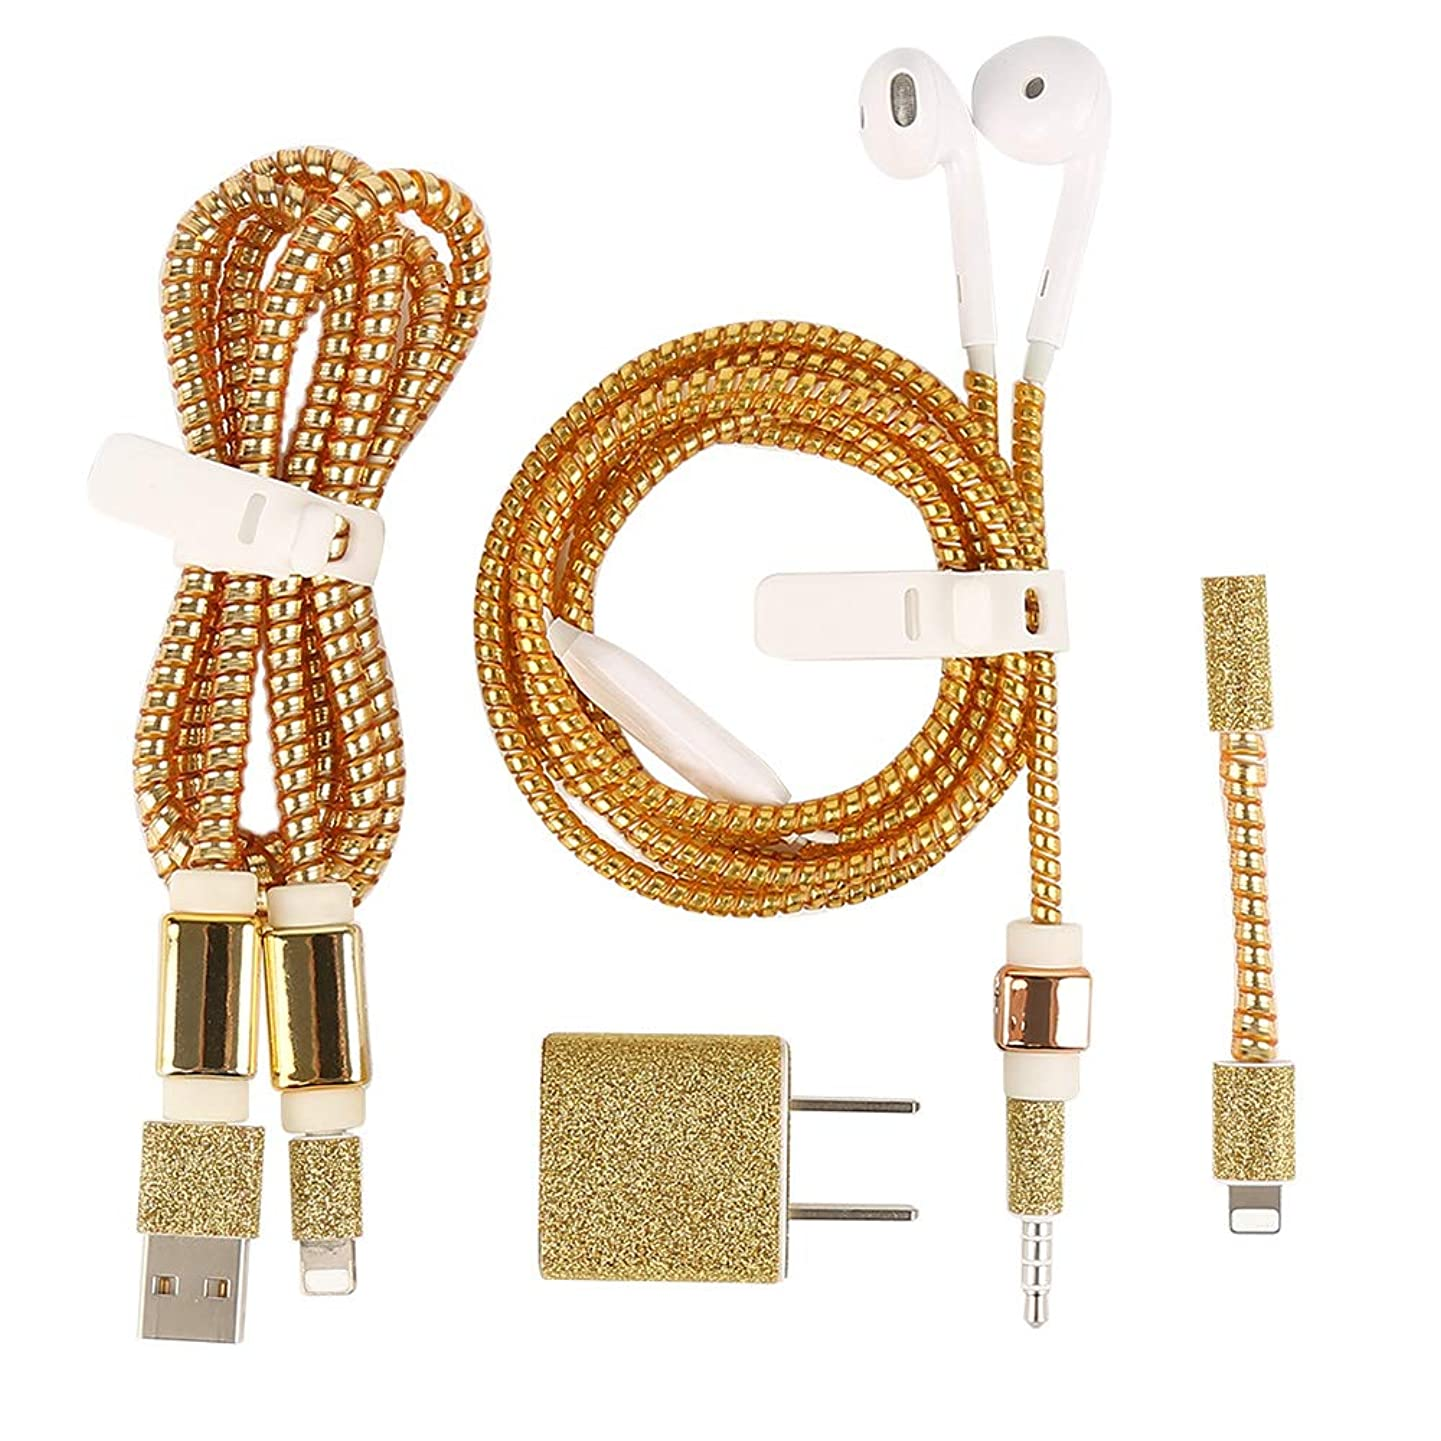 MINQISU USB Earphone Cable Mobile Phone Data Cable Protection Kit Line Saver Winder (Gold)